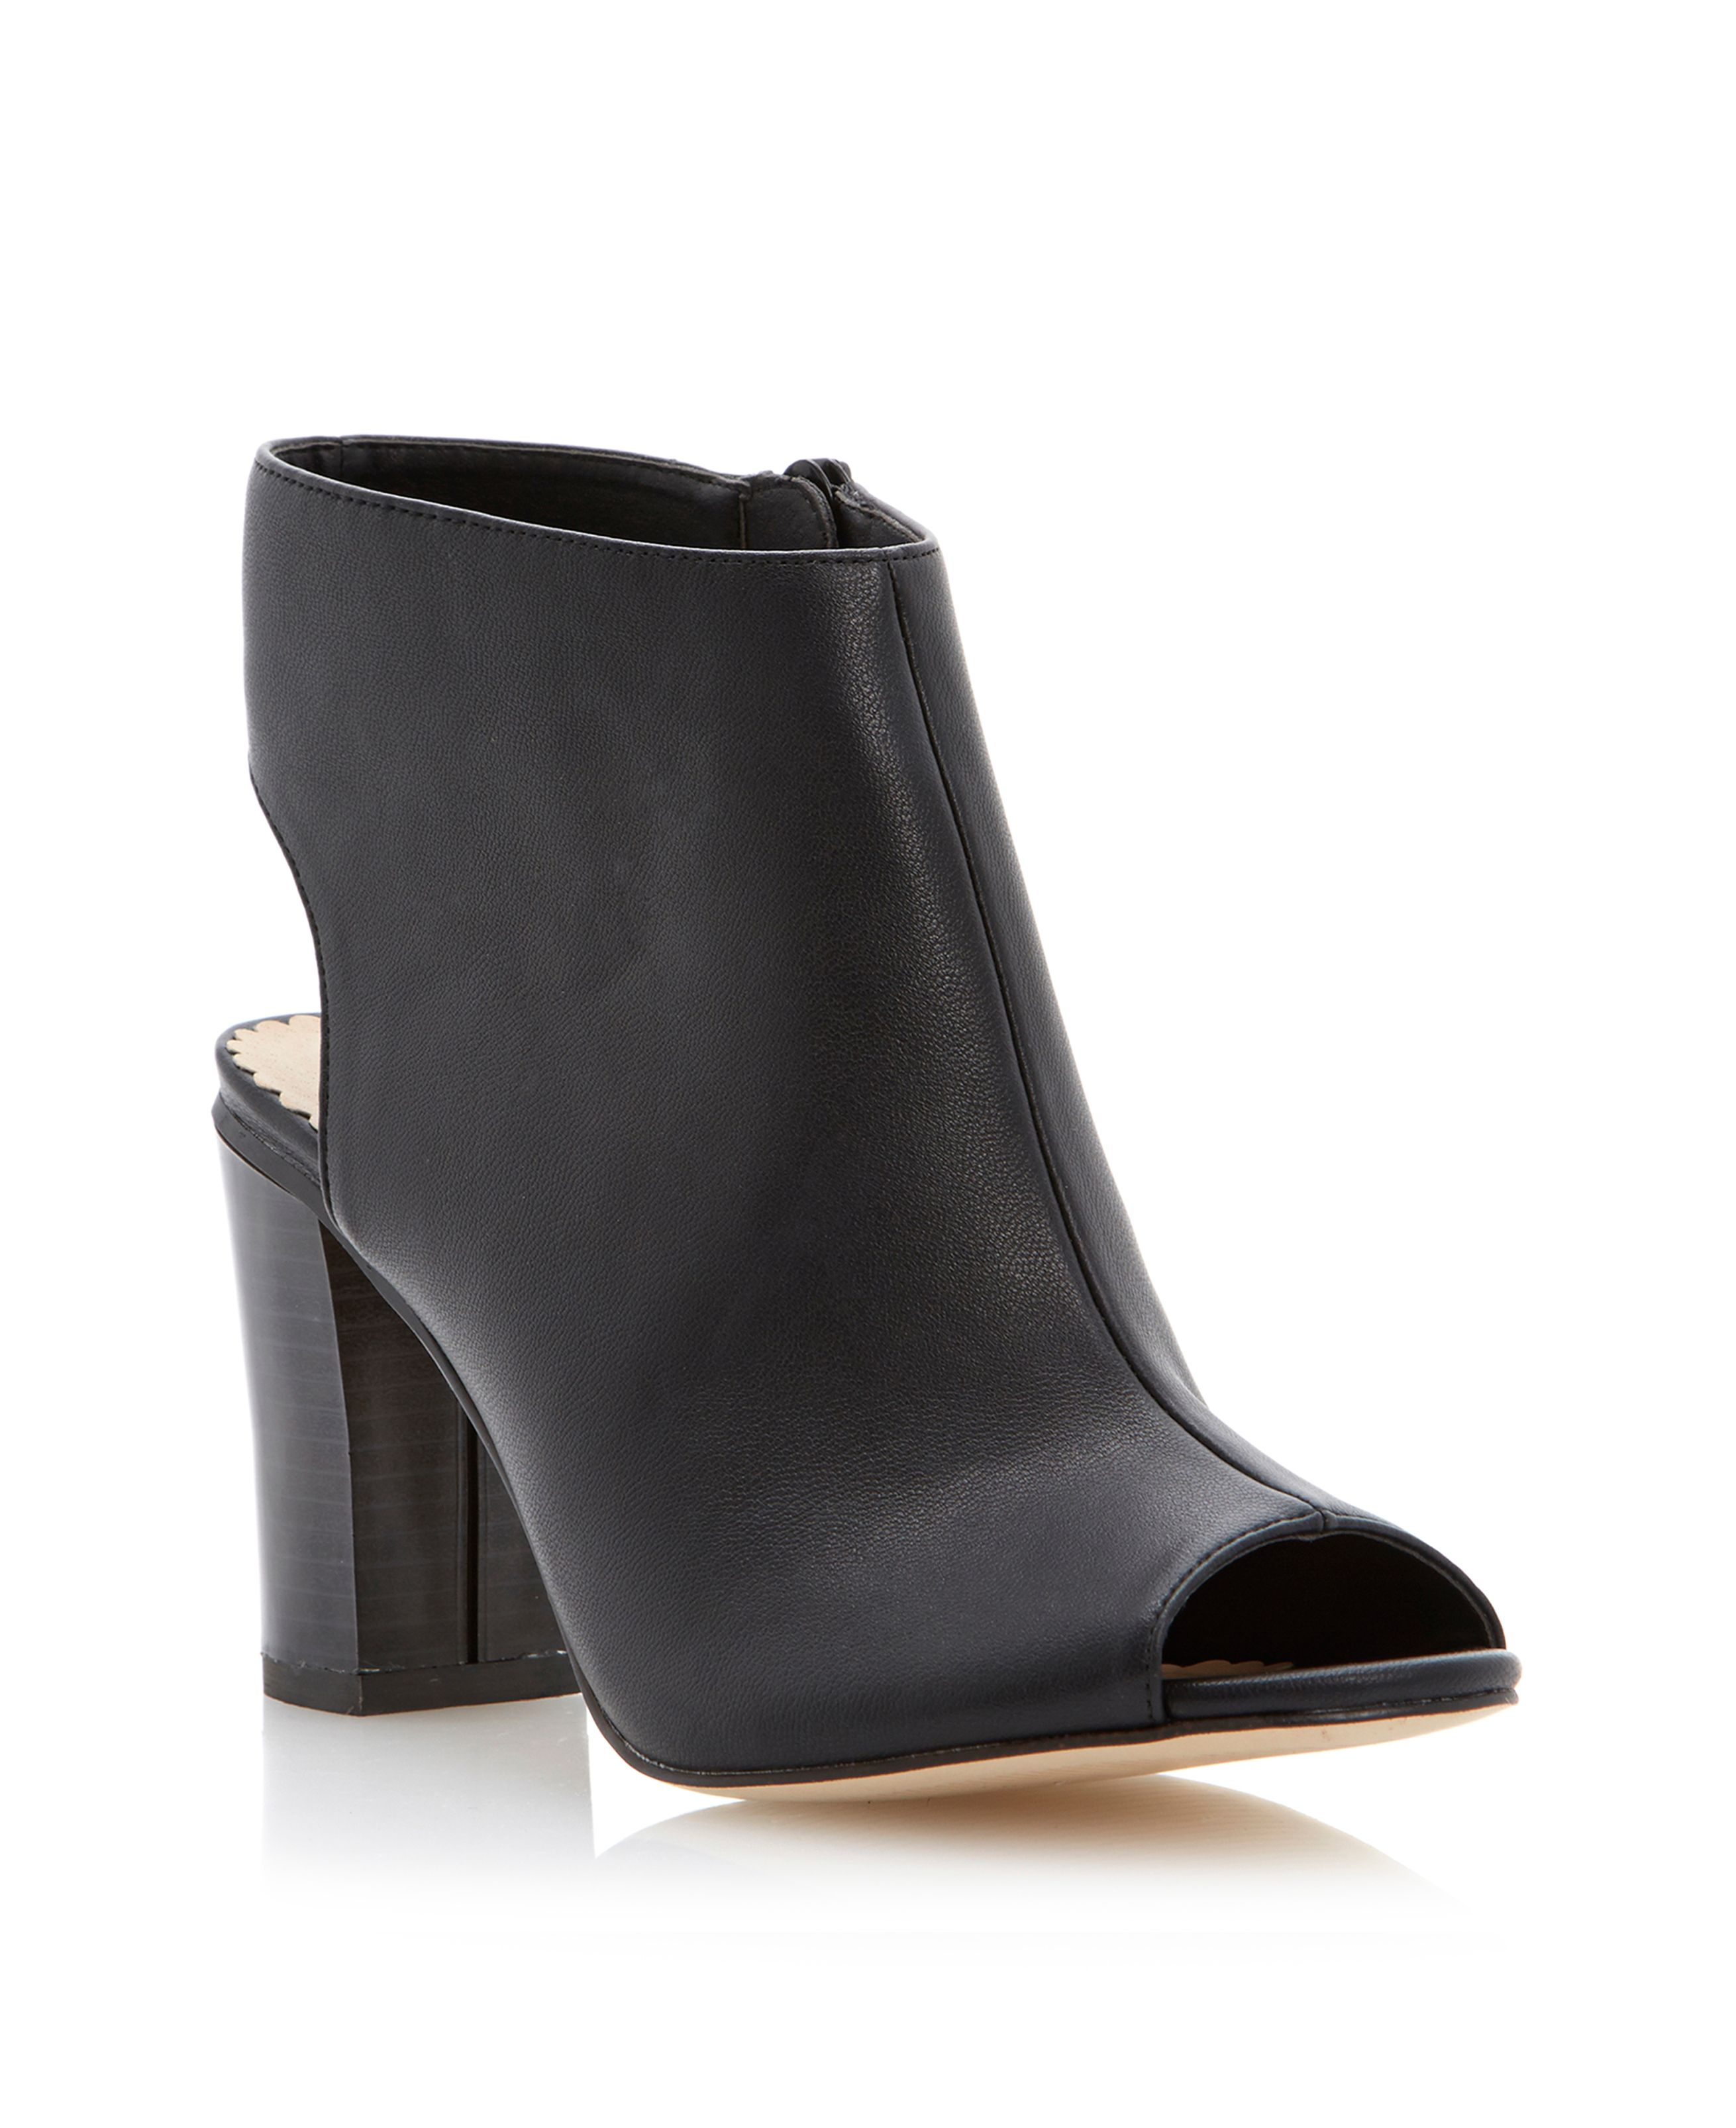 Neyo peep toe coverage boots